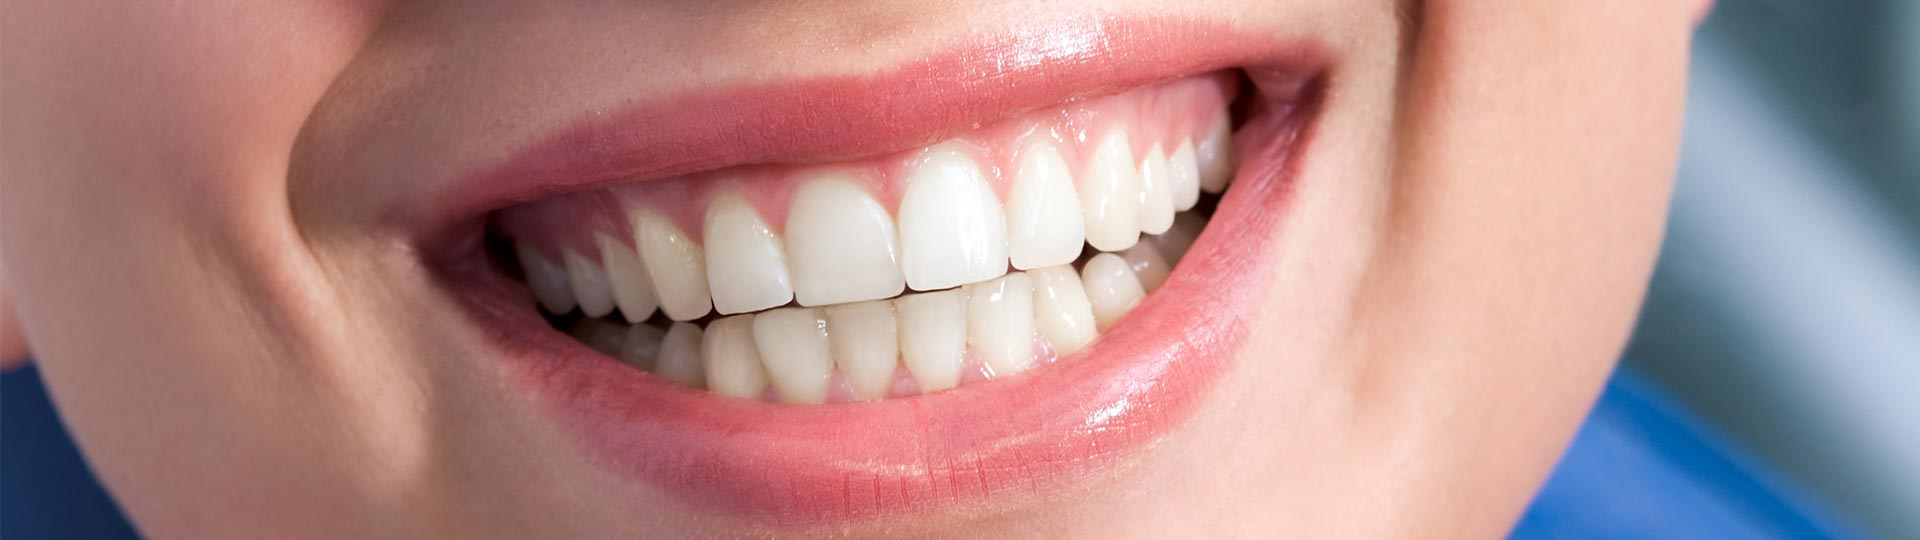 Is Teeth Whitening a Safe Choice?